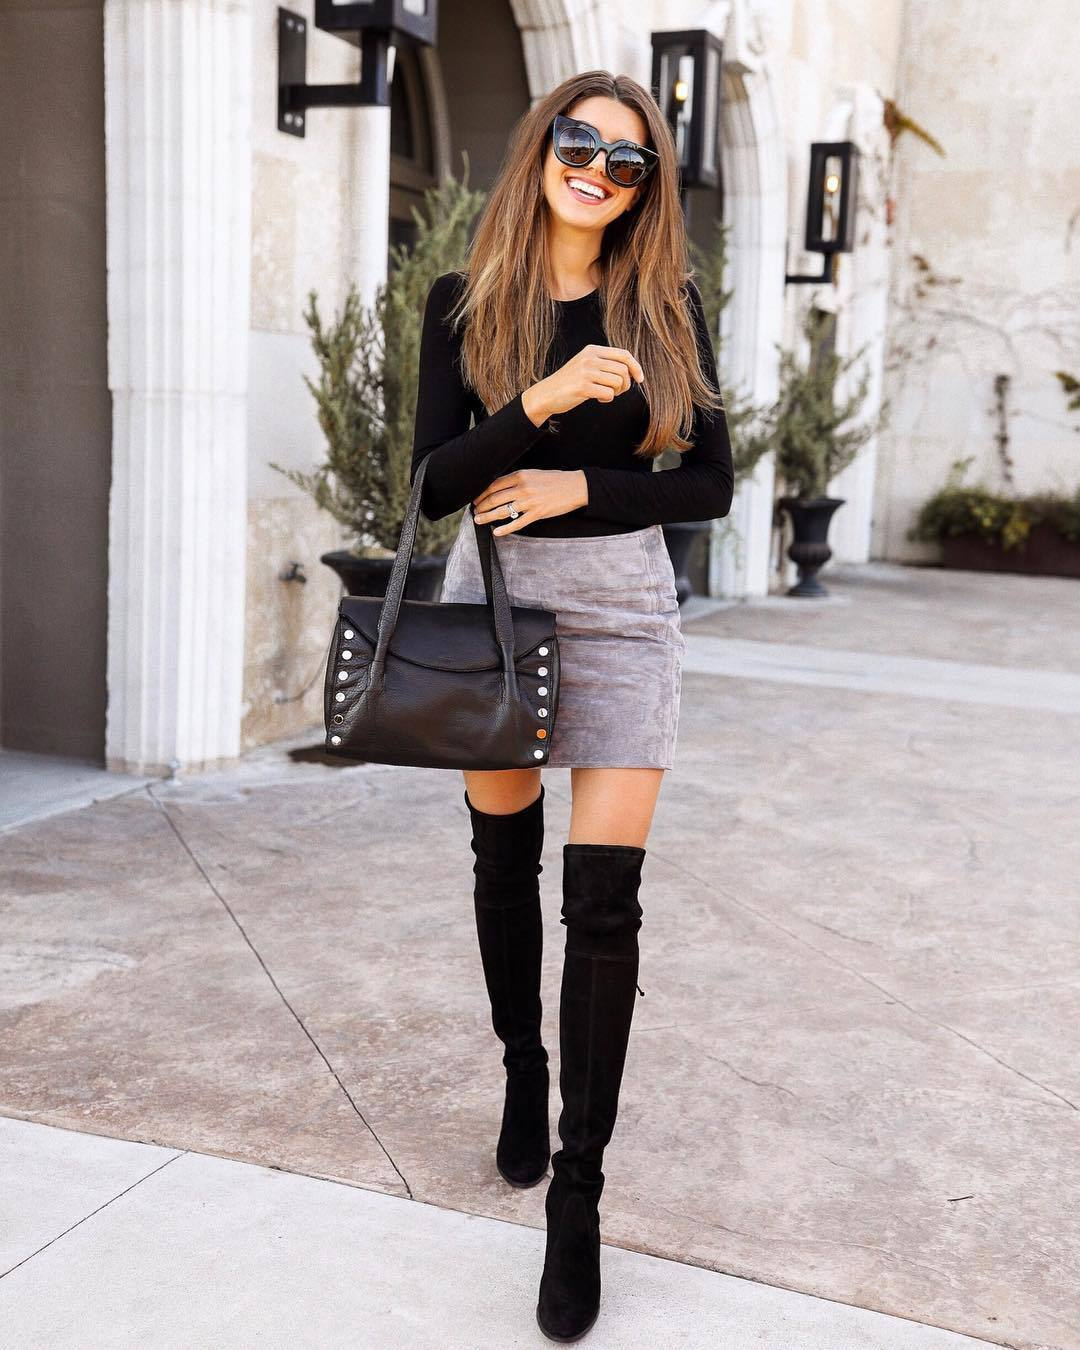 skirt mini skirt suede skirt grey skirt over the knee boots black boots handbag black bodysuit bag black bag